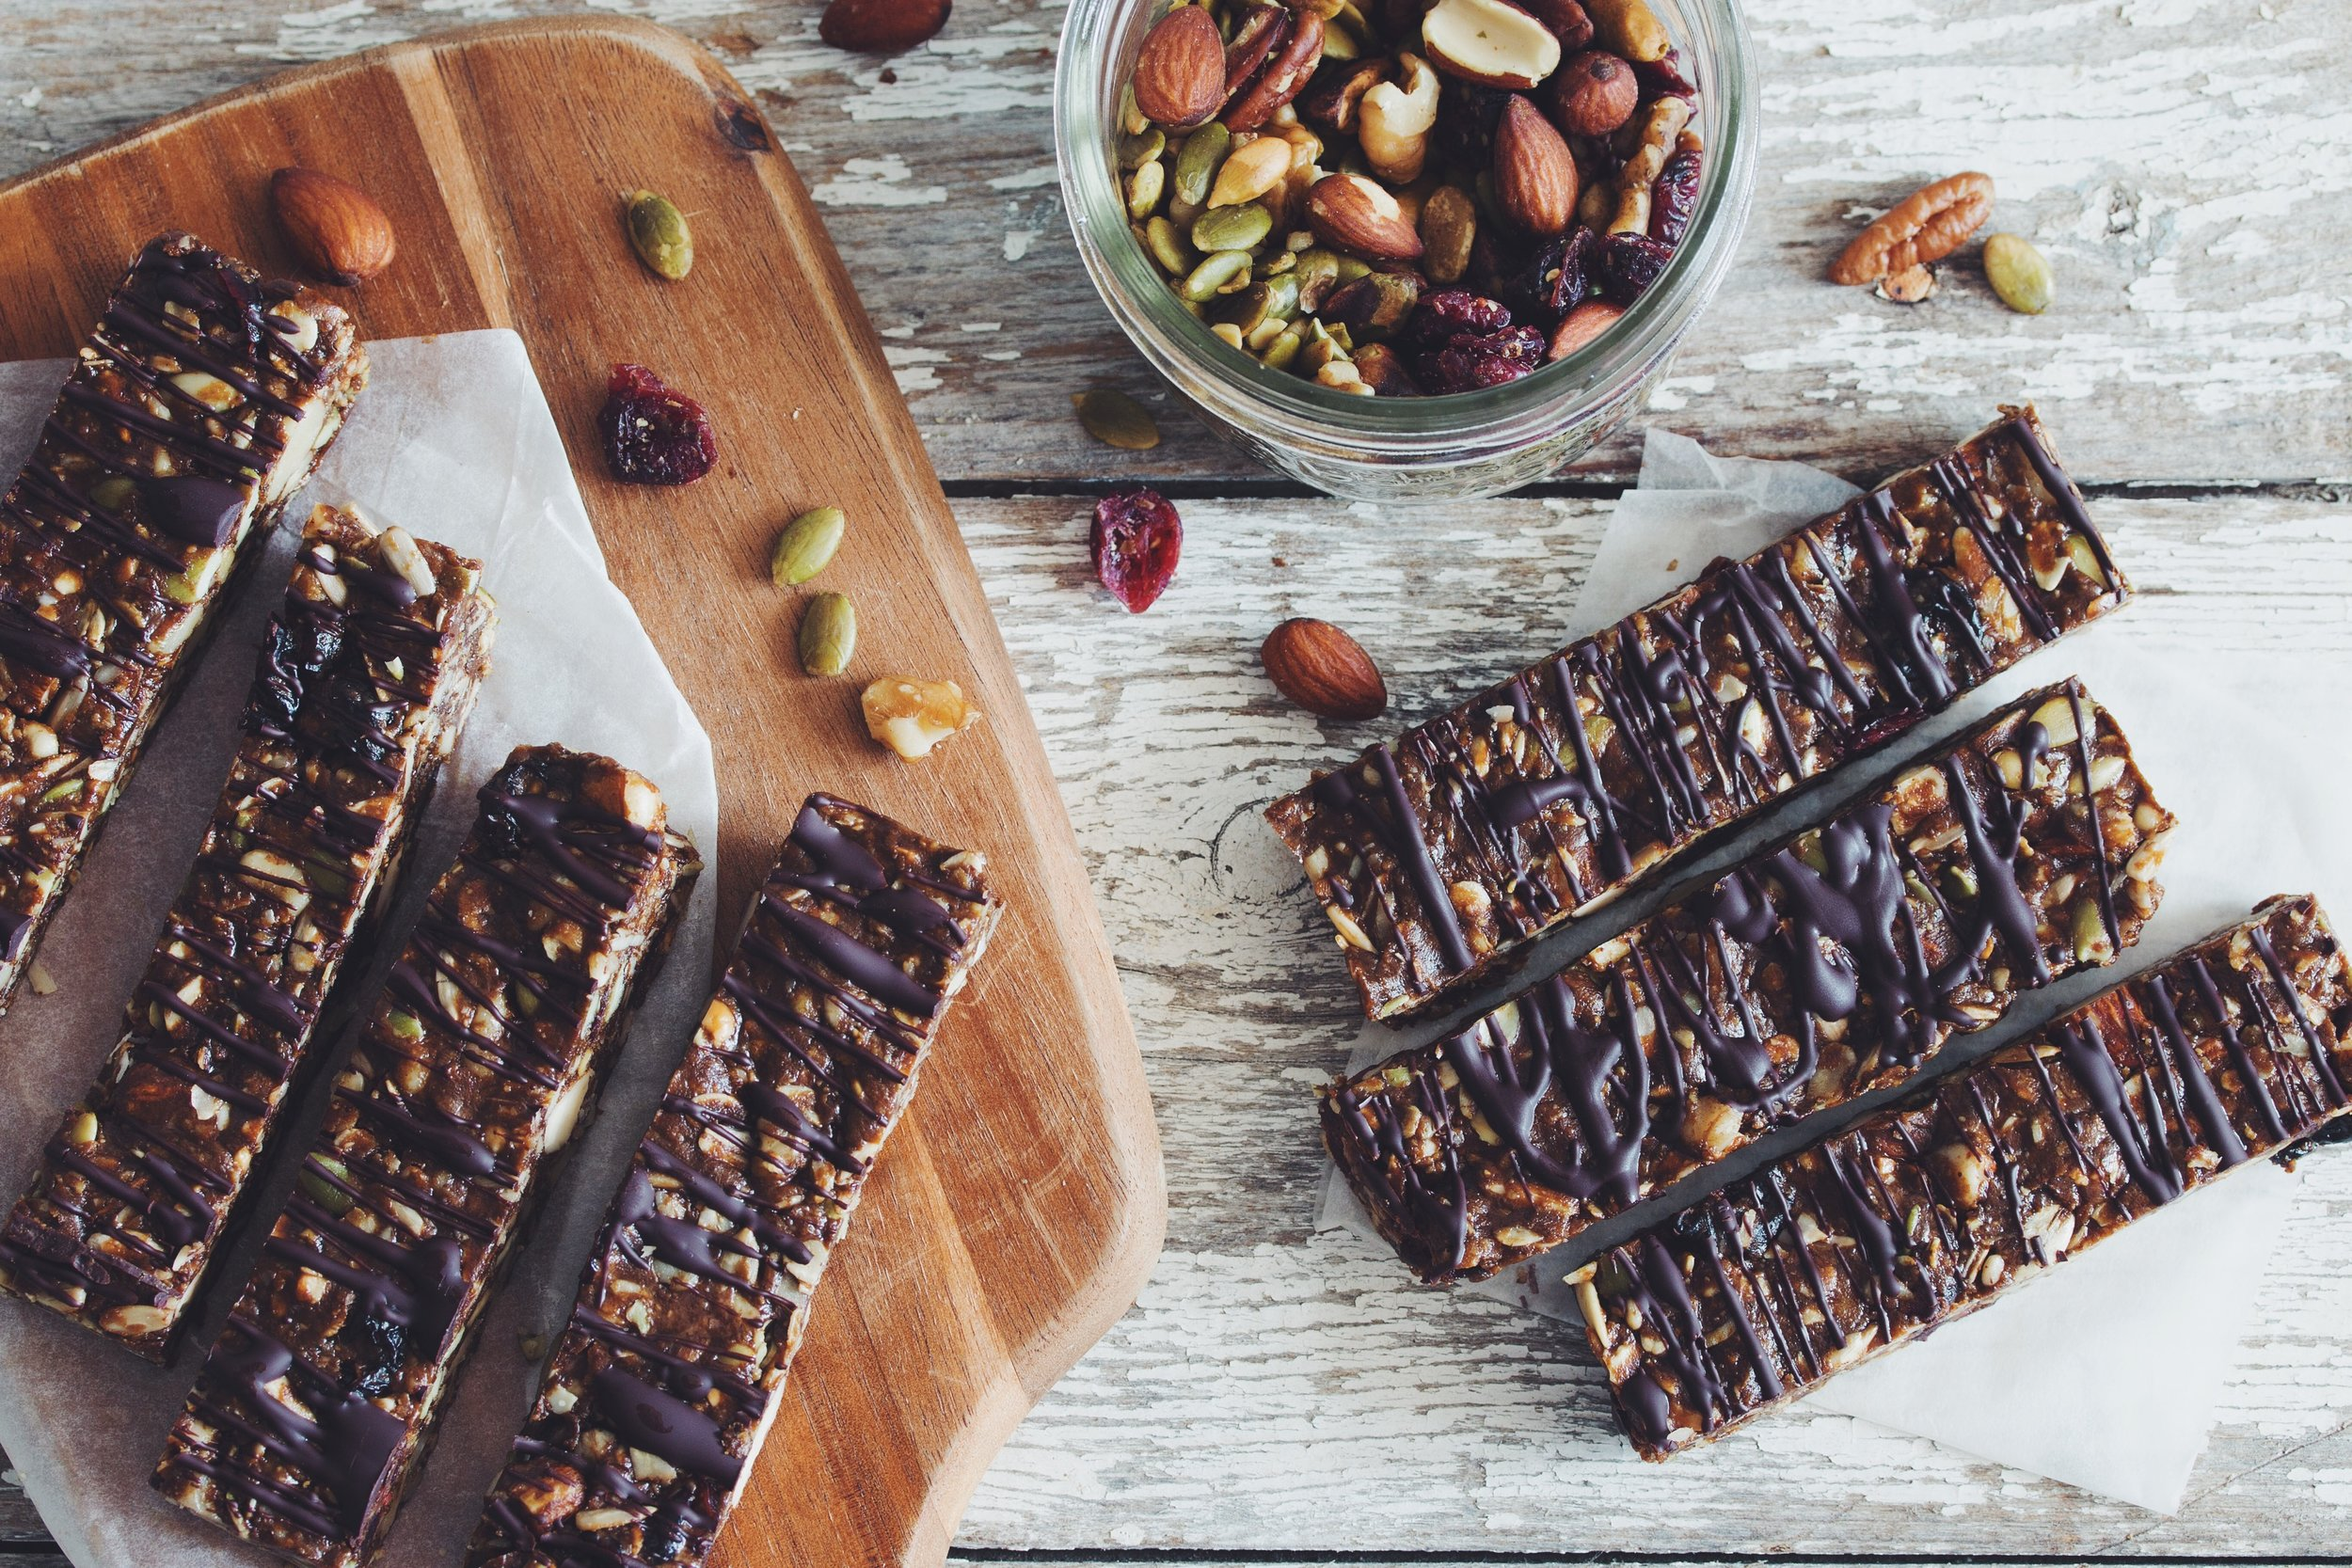 no-bake fruit & nut granola bars - breakfast or snack these bars are perfect on-the-go!